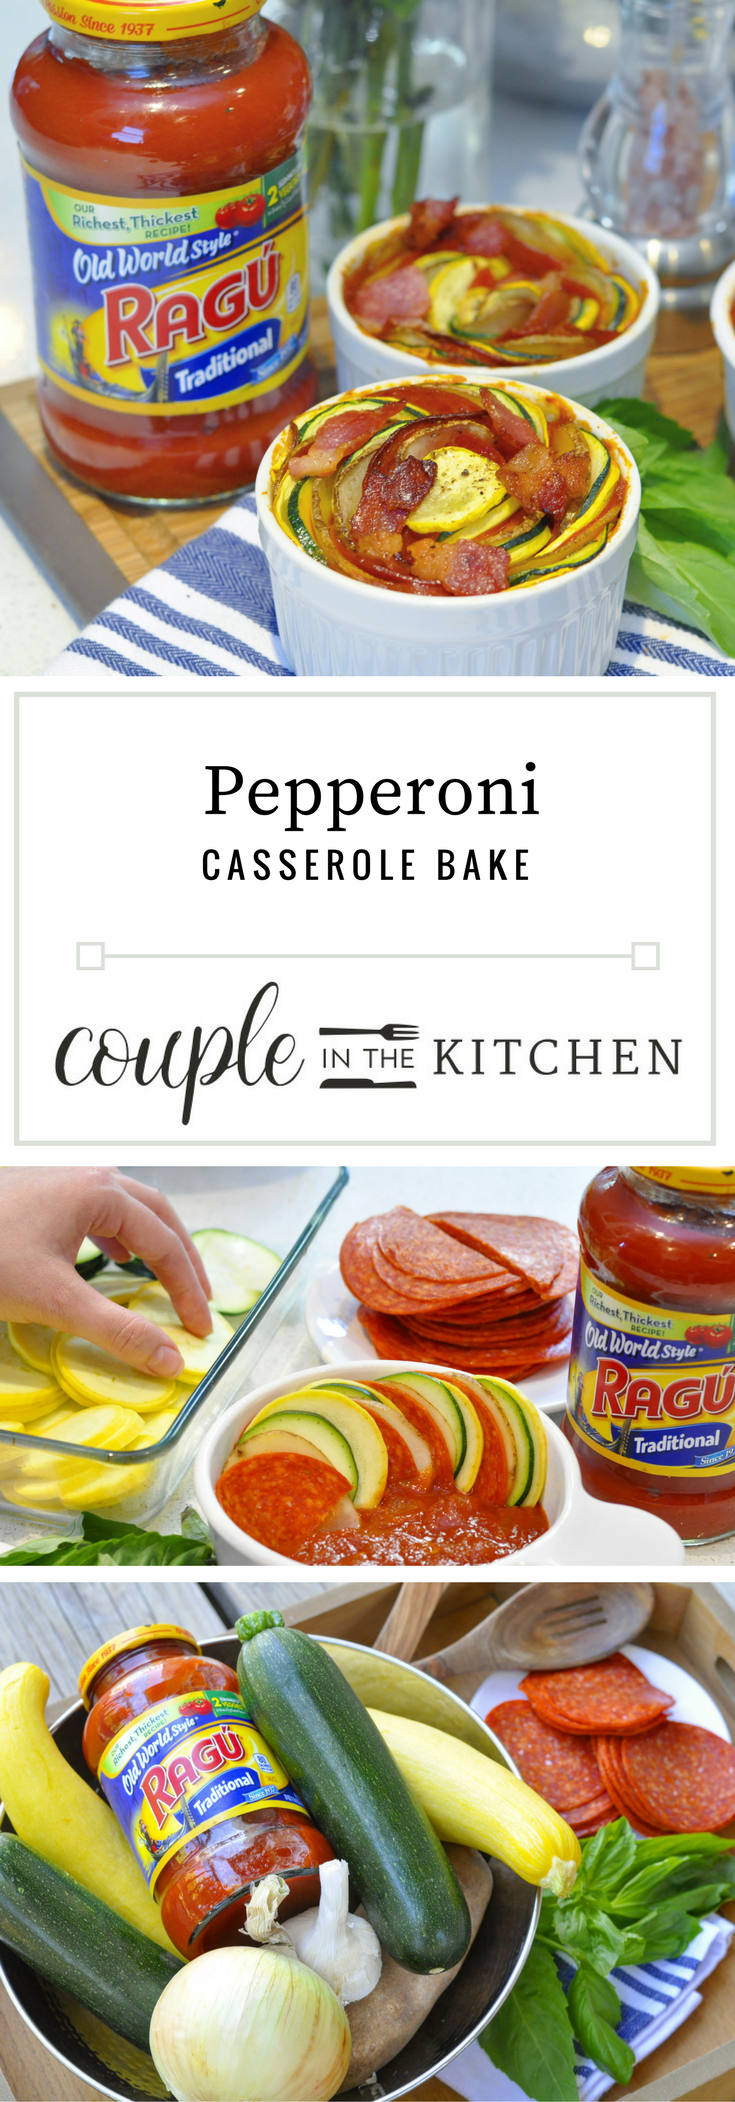 Pepperoni Casserole | coupleinthekitchen.com